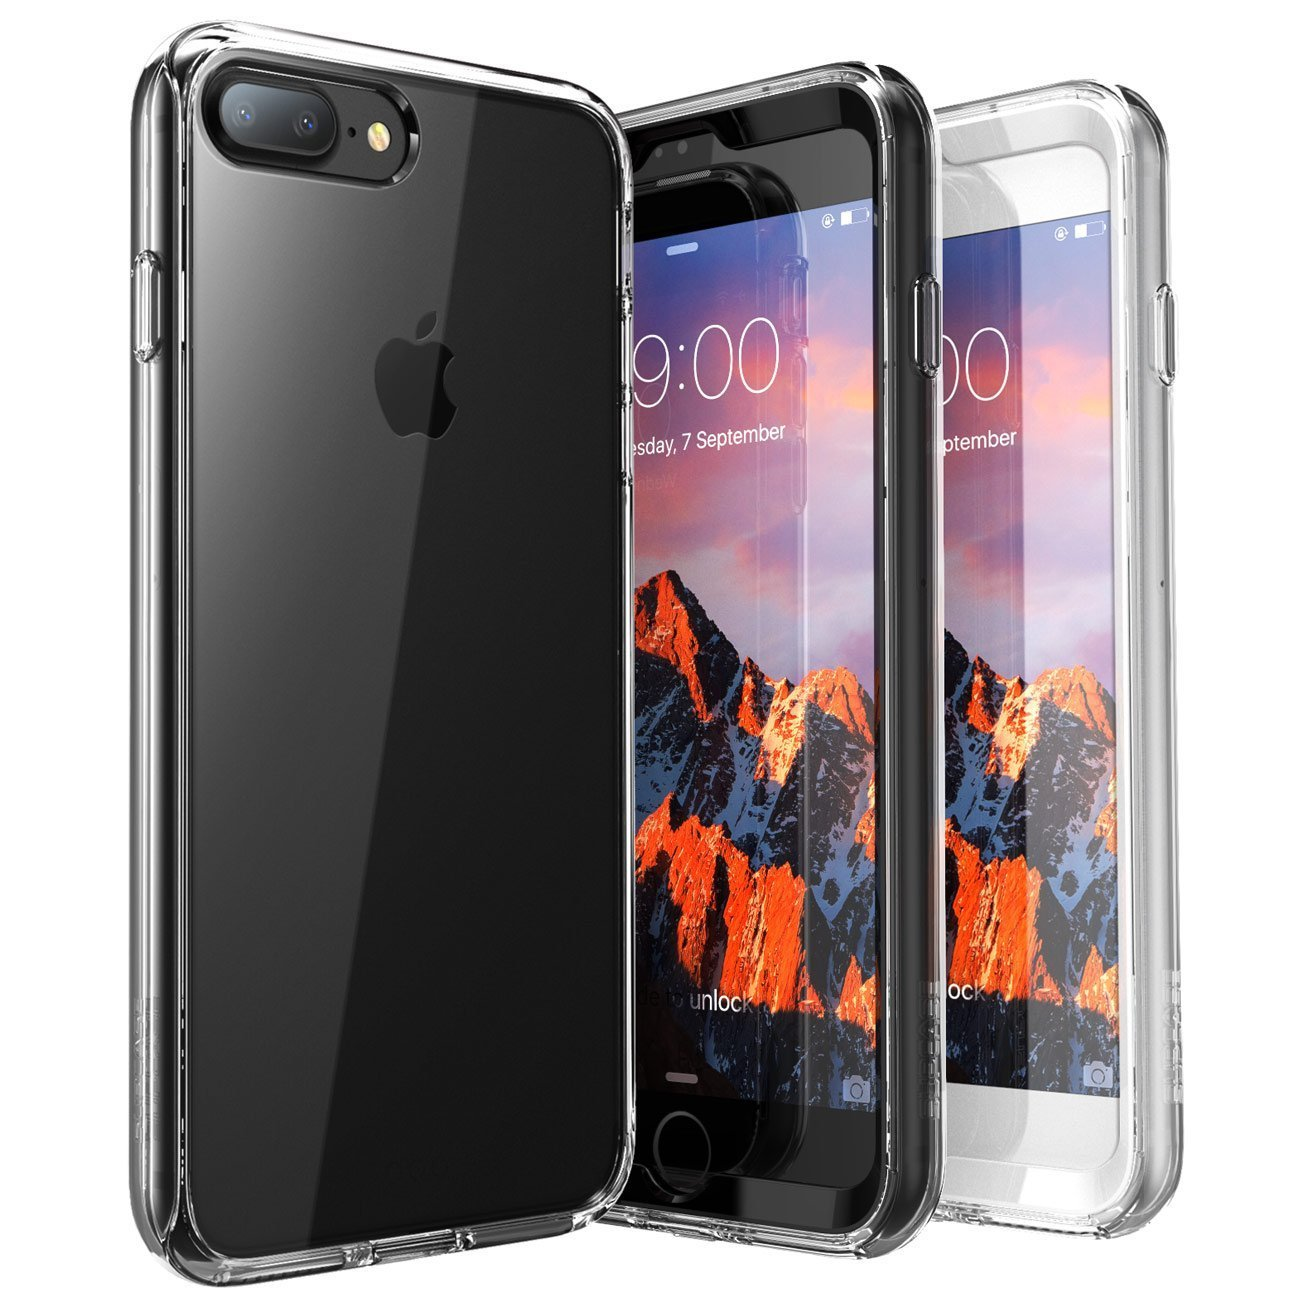 iPhone 7 Plus Case, iPhone 8 Plus Case, SUPCASE Ares Bumper Case includes 2 interchangeable front casings with Built-in Screen Protector for Apple iPhone 7 Plus 2016 / iPhone 8 Plus 2017, Clear by SupCase